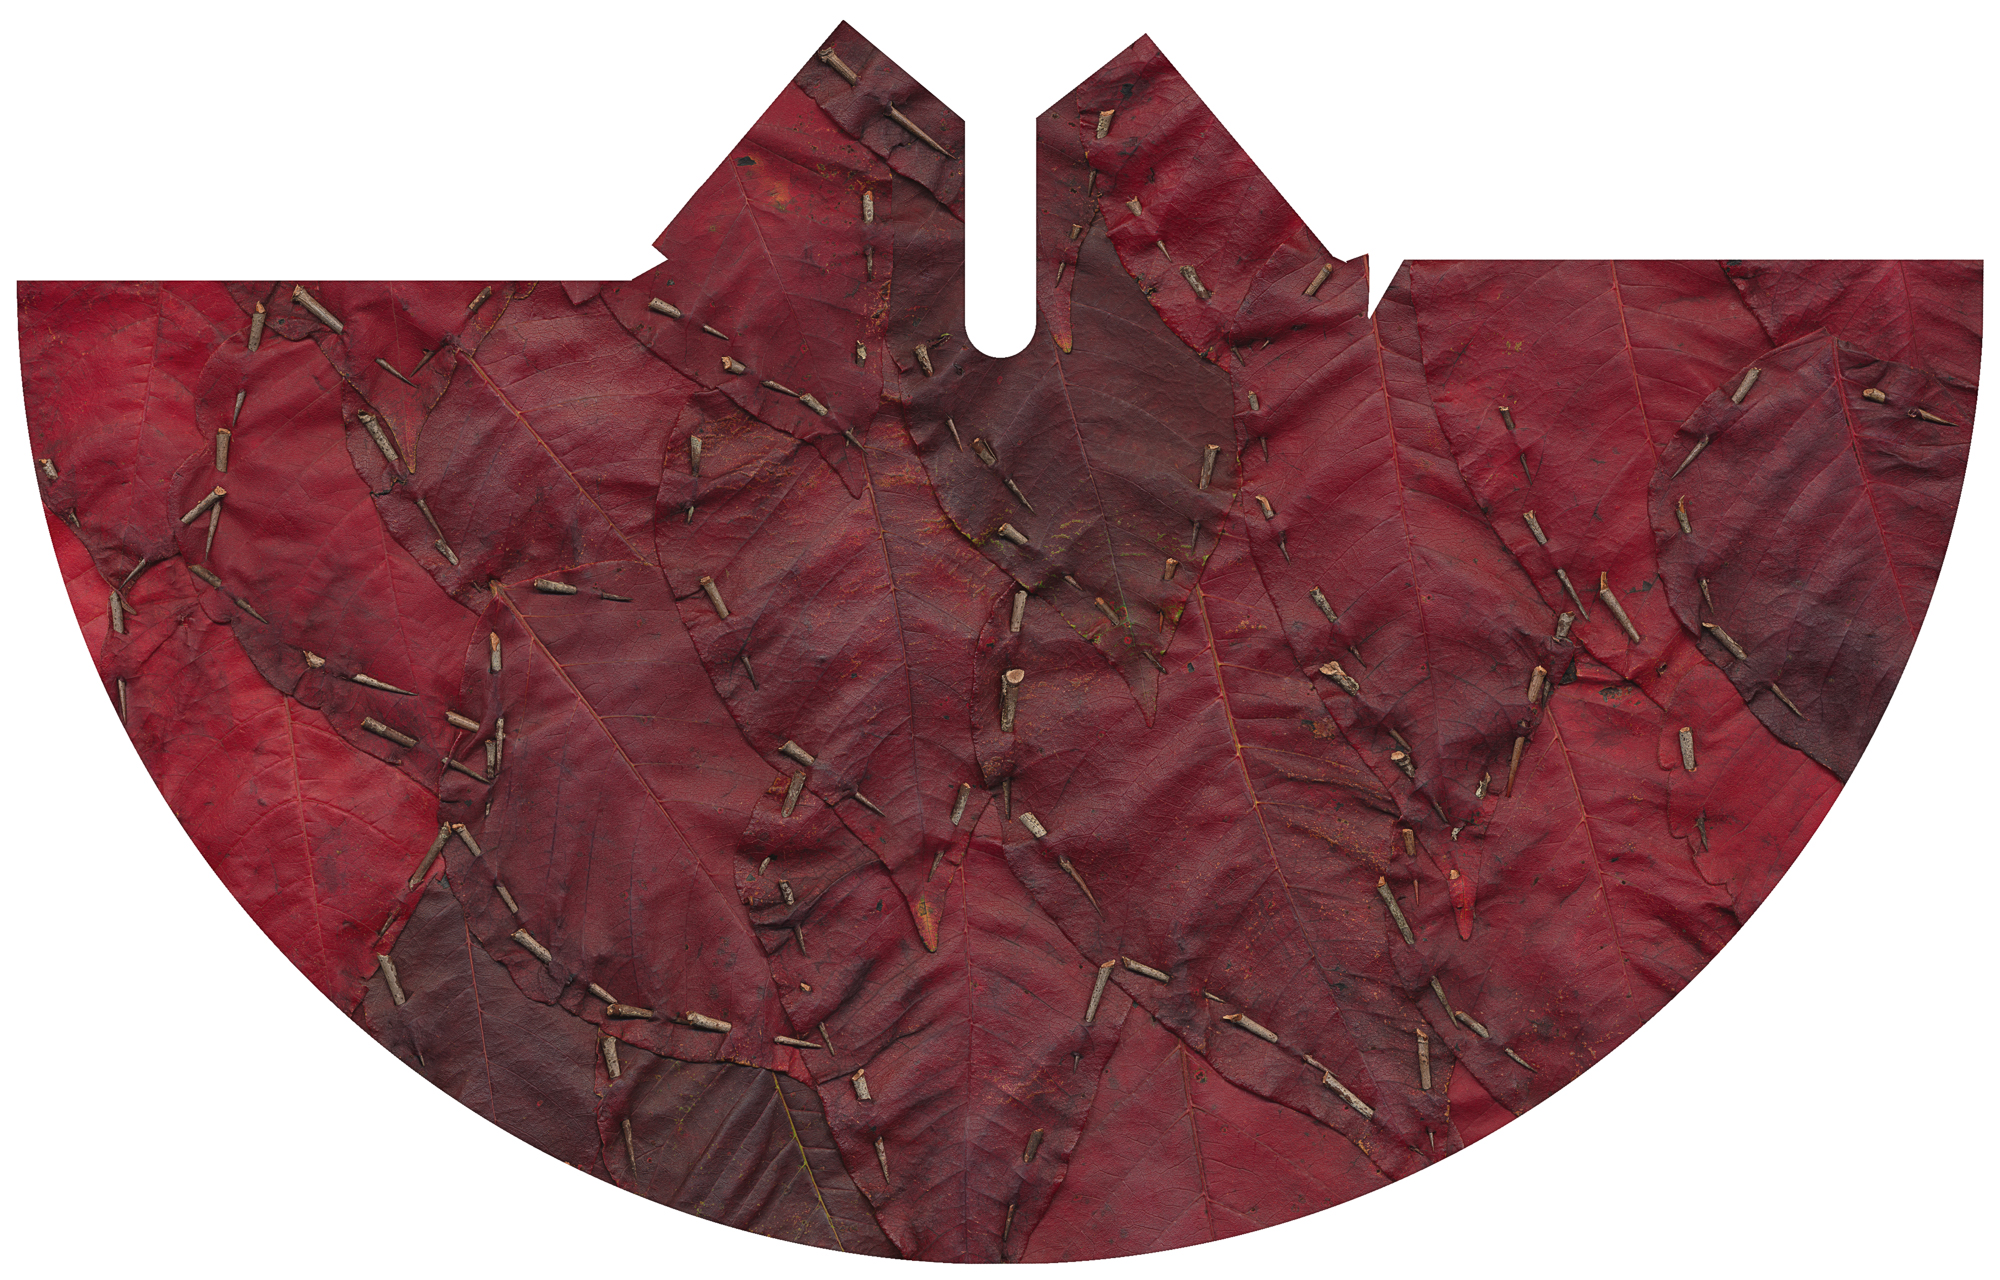 "Red Leaf and Hawthorn Tipi Cover, 2017.  Photograph. Leaves and hawthorns. Archival print 76"" X 43"".   Red Leaf and Hawthorn  celebrates the beauty and resilience of wild plants, and their ability to thrive in hostile environments. The leathery leaves used in this work grow along the railway line on an overpass in the heart of Montreal. The hawthorns, although painful to pick, stitch the leaves together perfectly."